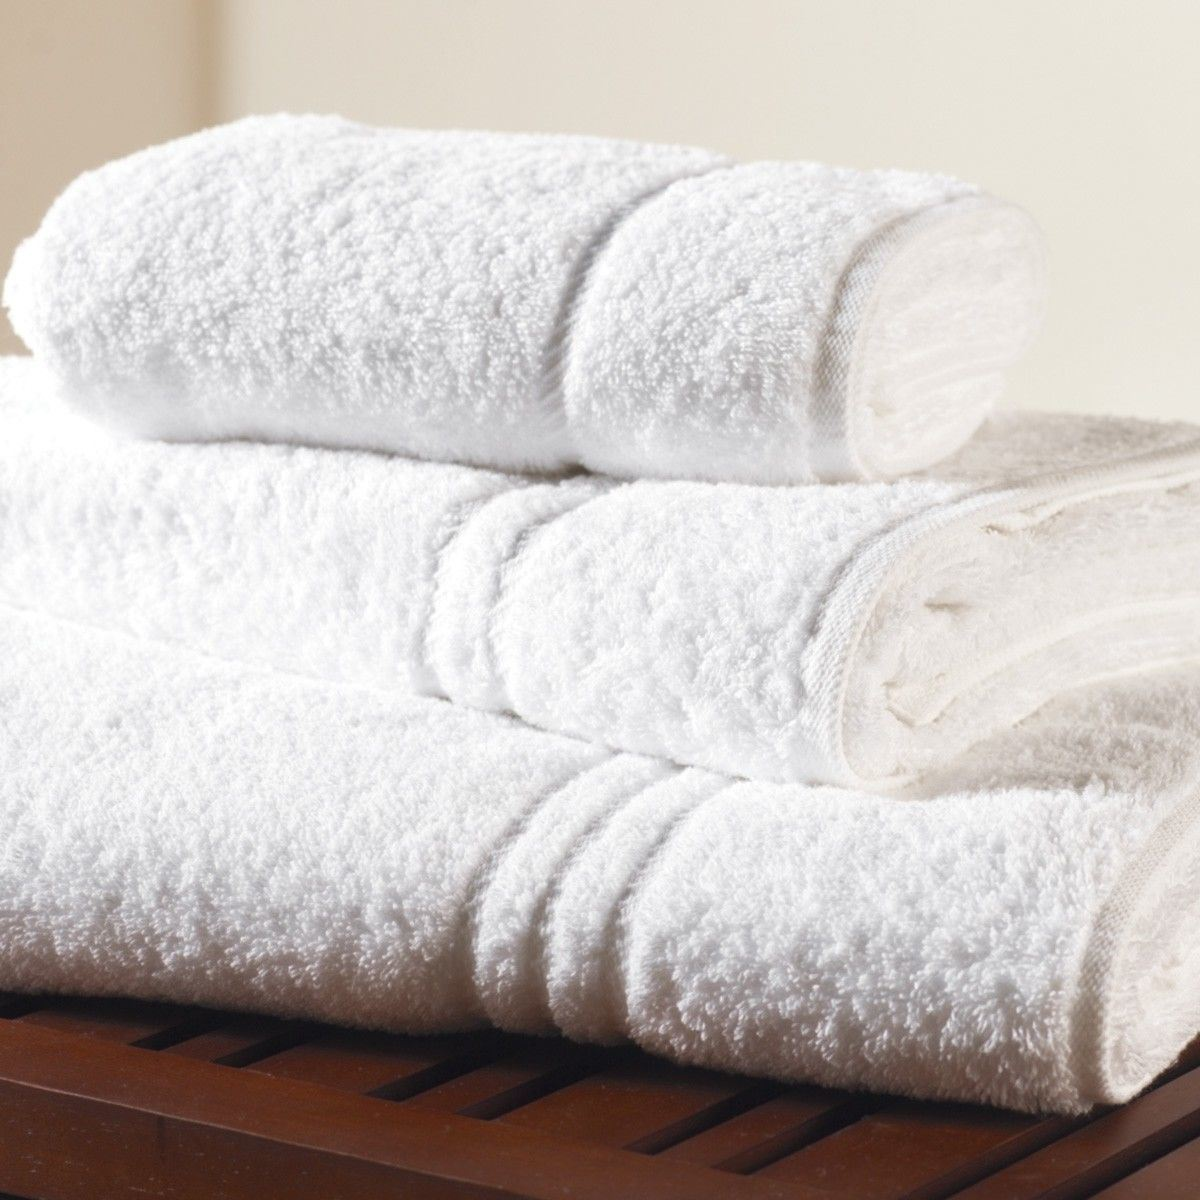 White Cotton Jacquard Terry Hotel Bath Towel, Bathroom Linen